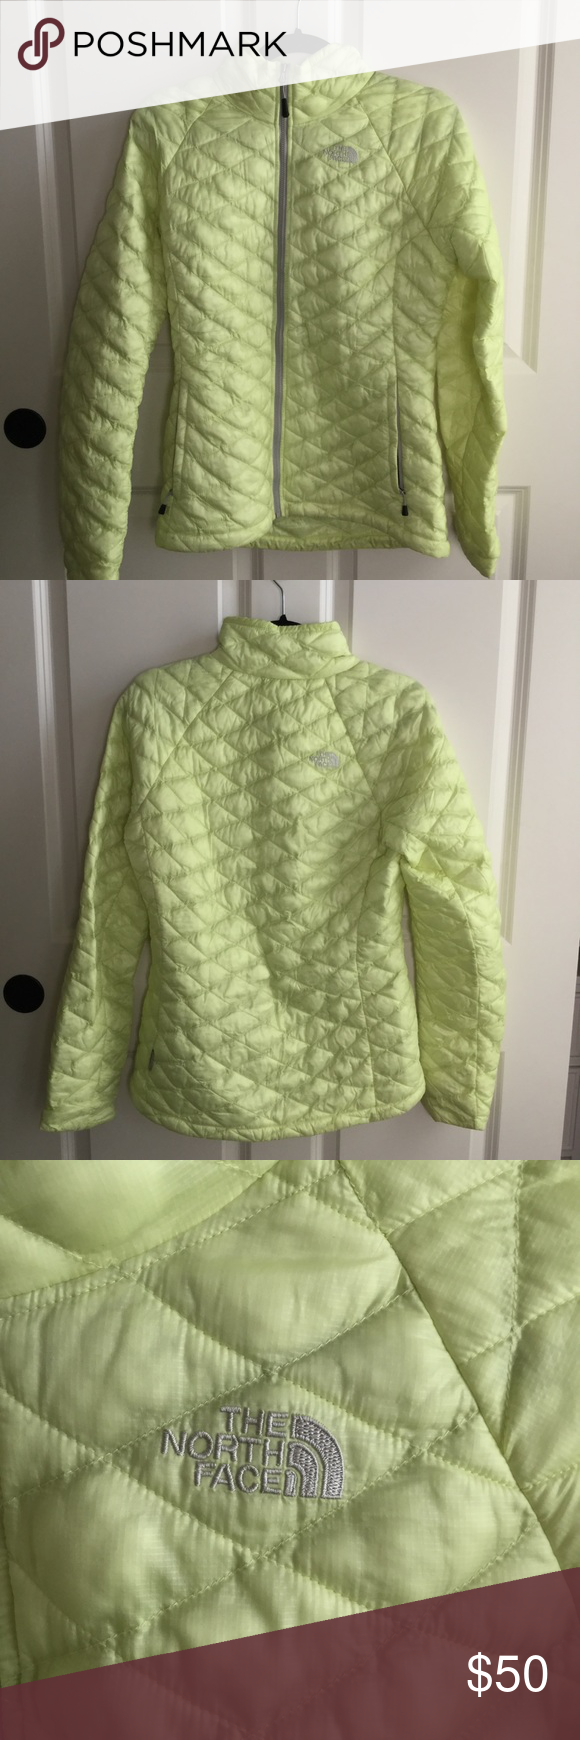 The North Face Lime Green Jacket Green Jacket Lime Green Clothes Design [ 1740 x 580 Pixel ]